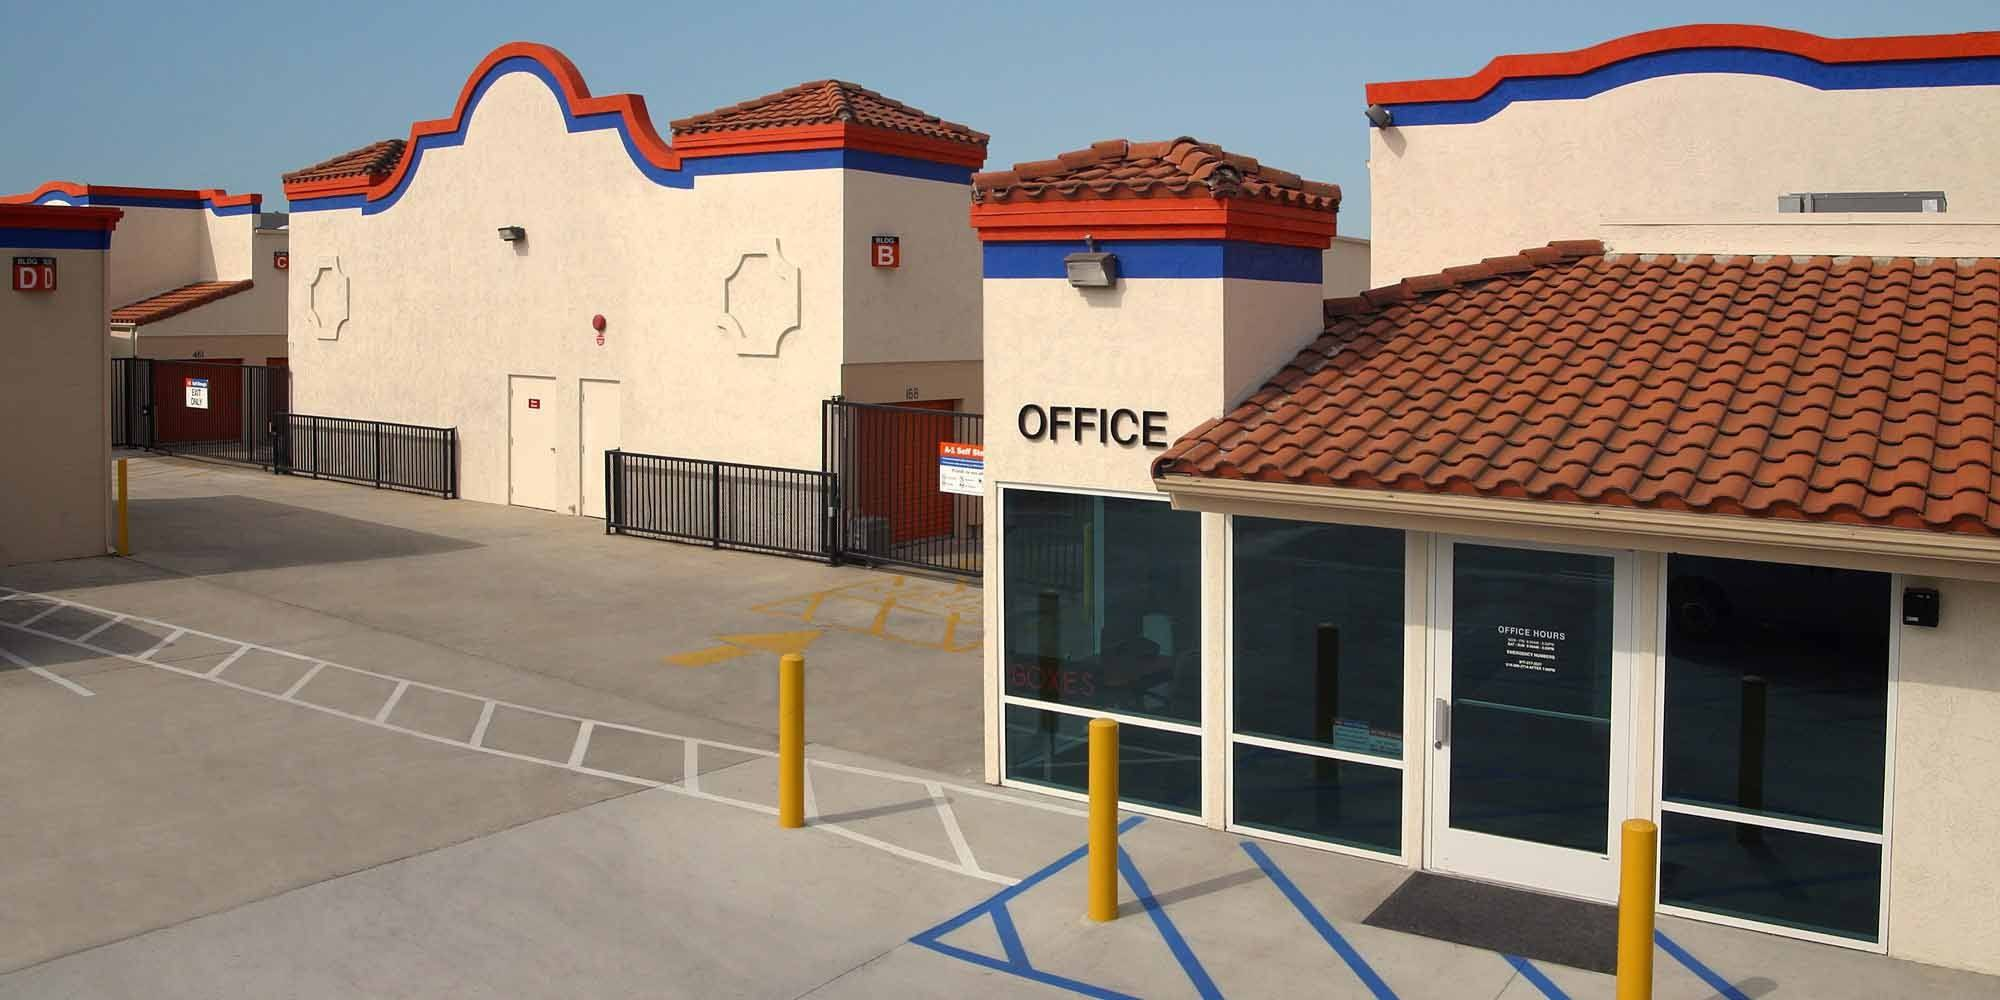 Self storage in El Cajon CA